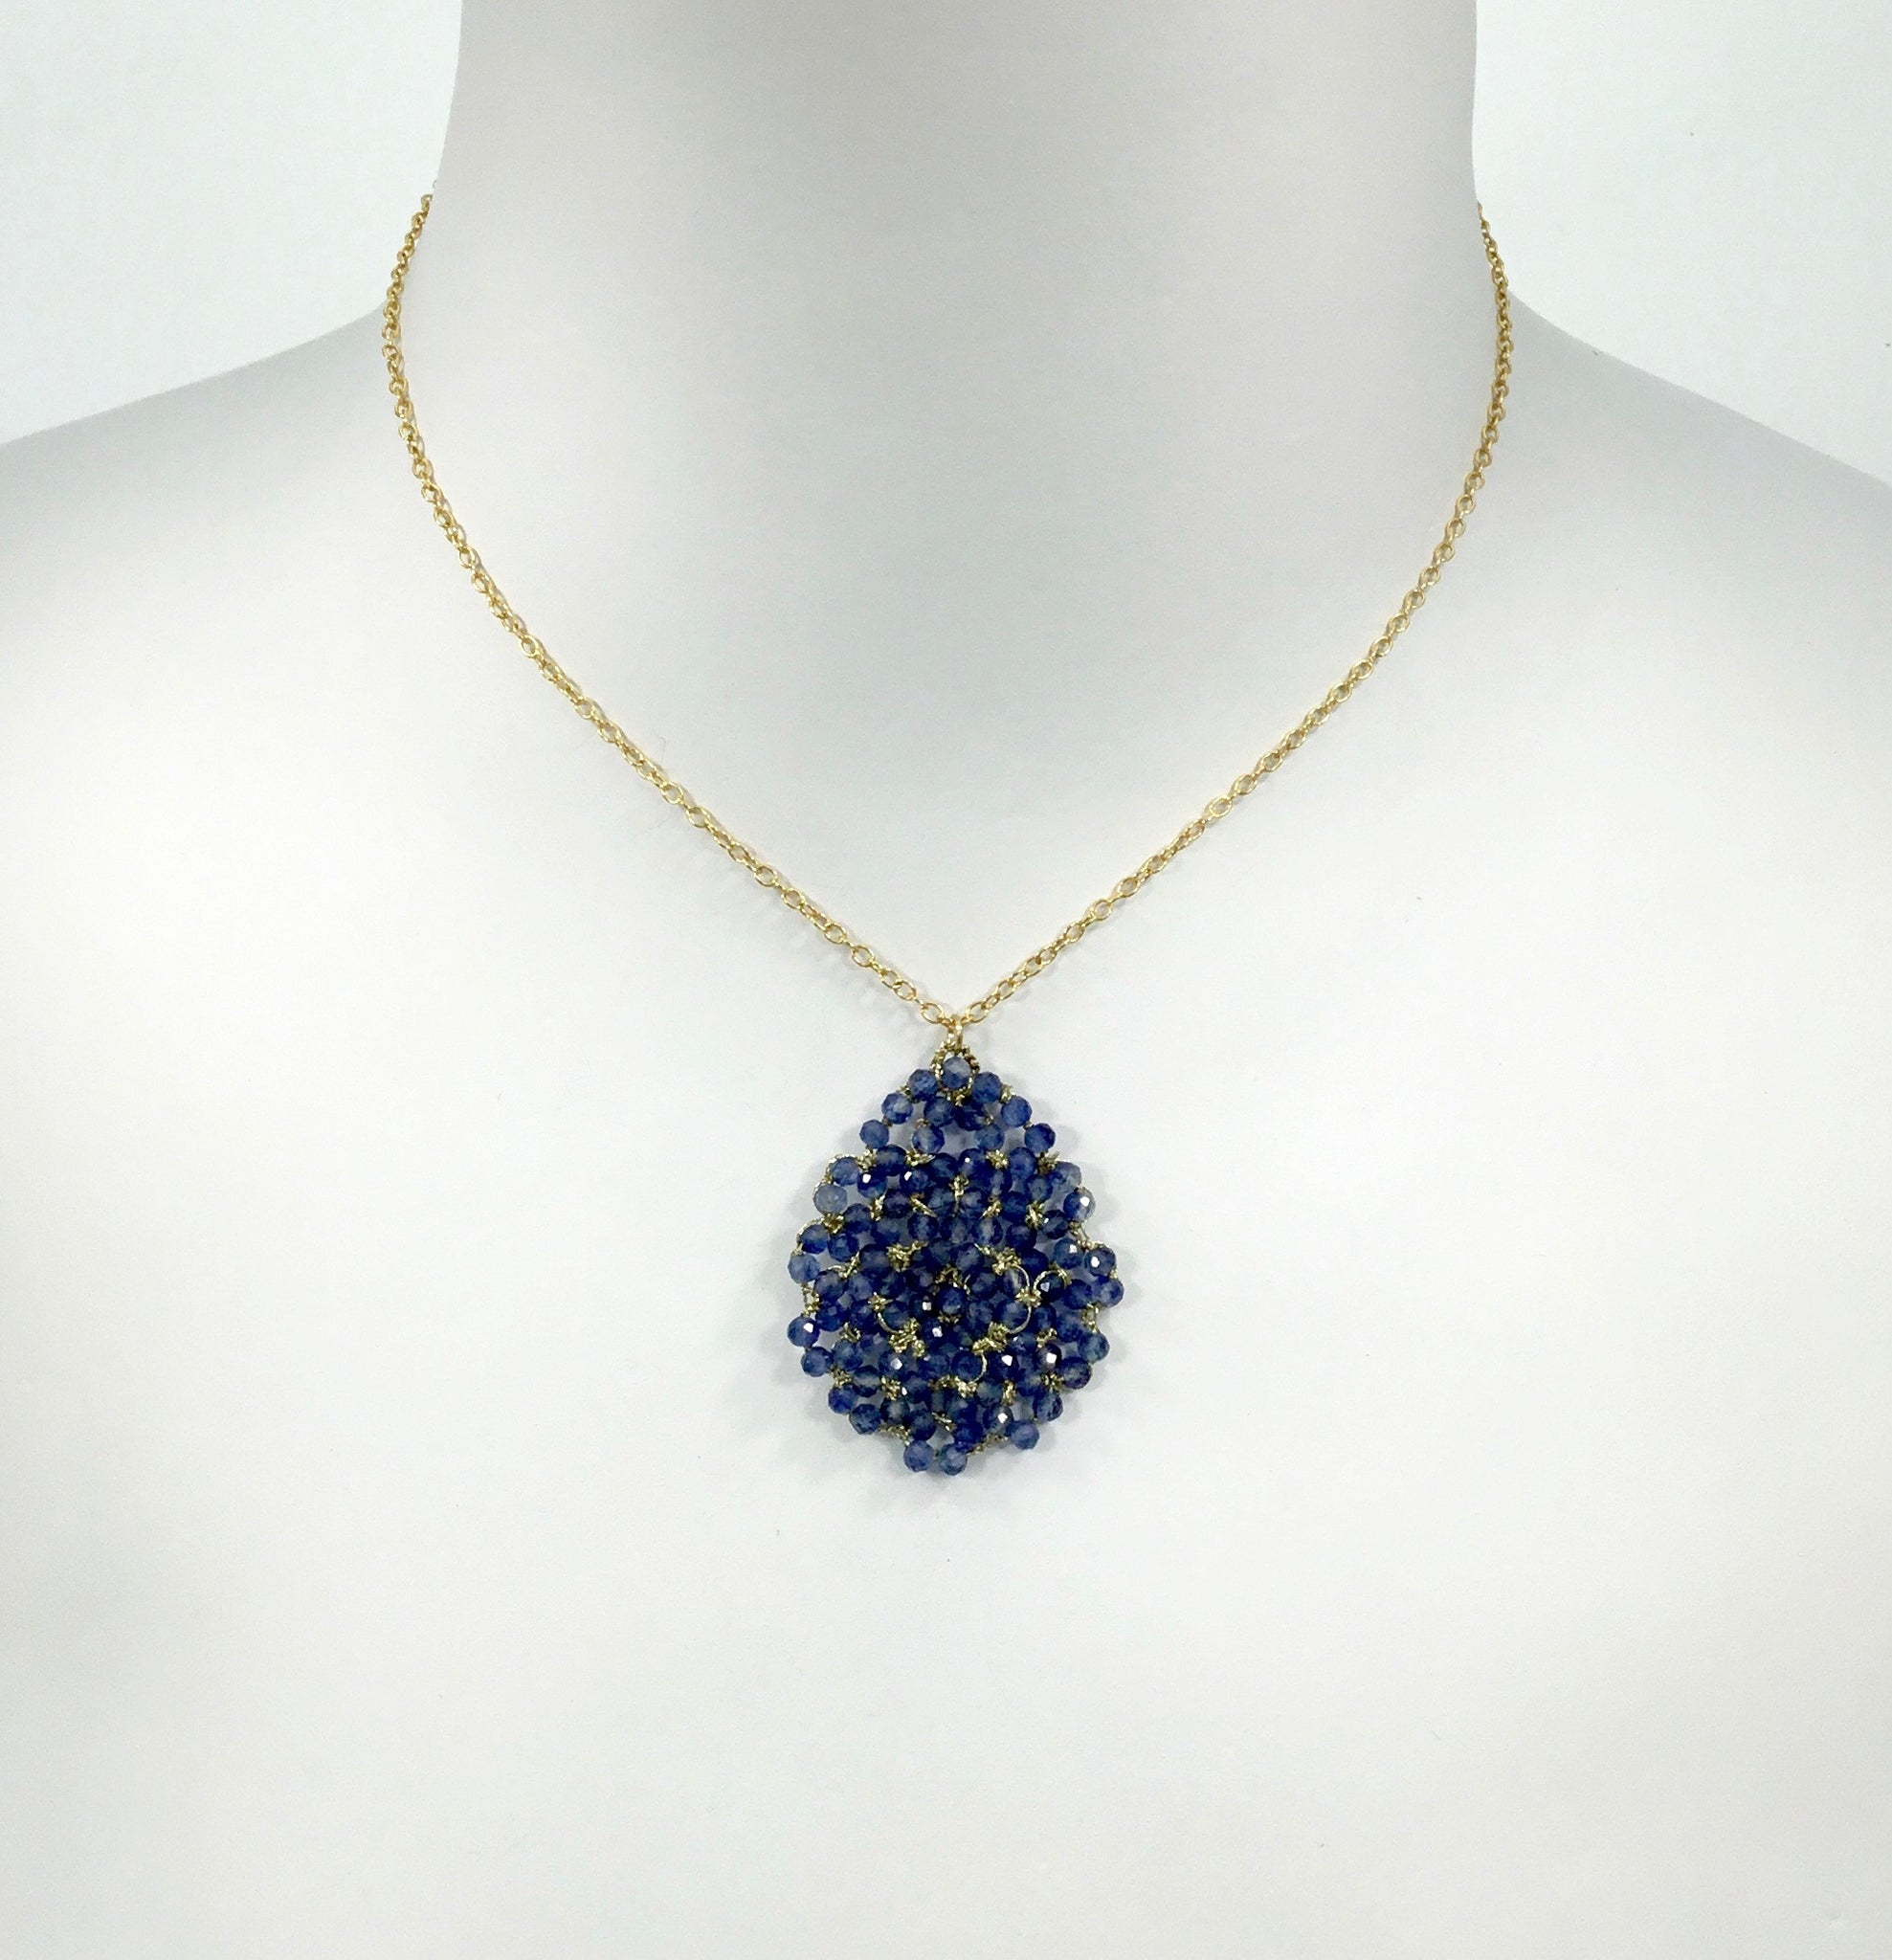 Danielle Welmond Kyanite Lace Pear Necklace